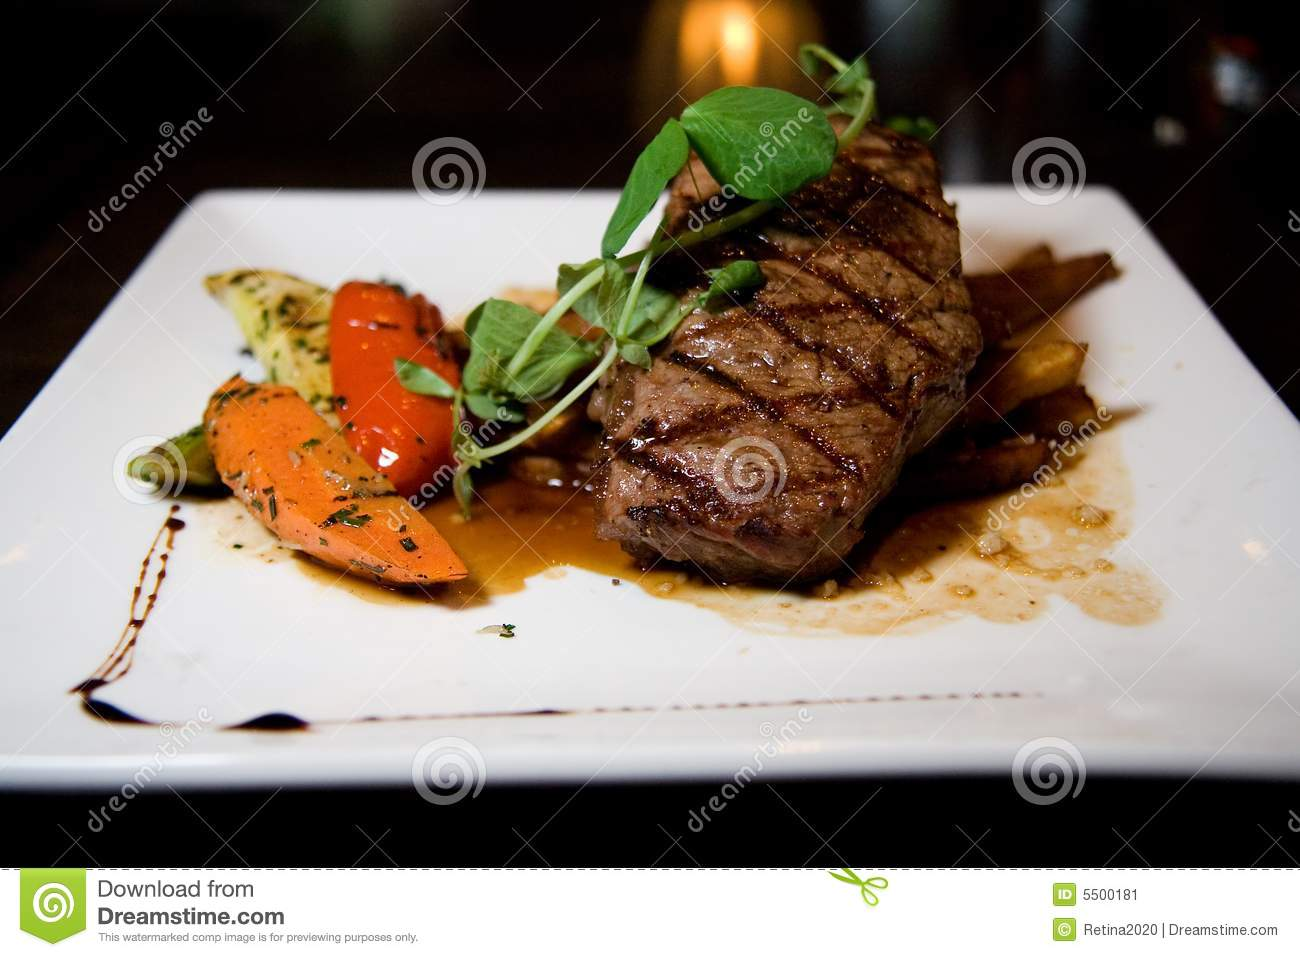 Juicy Angus Steak Stock Image Image 5500181